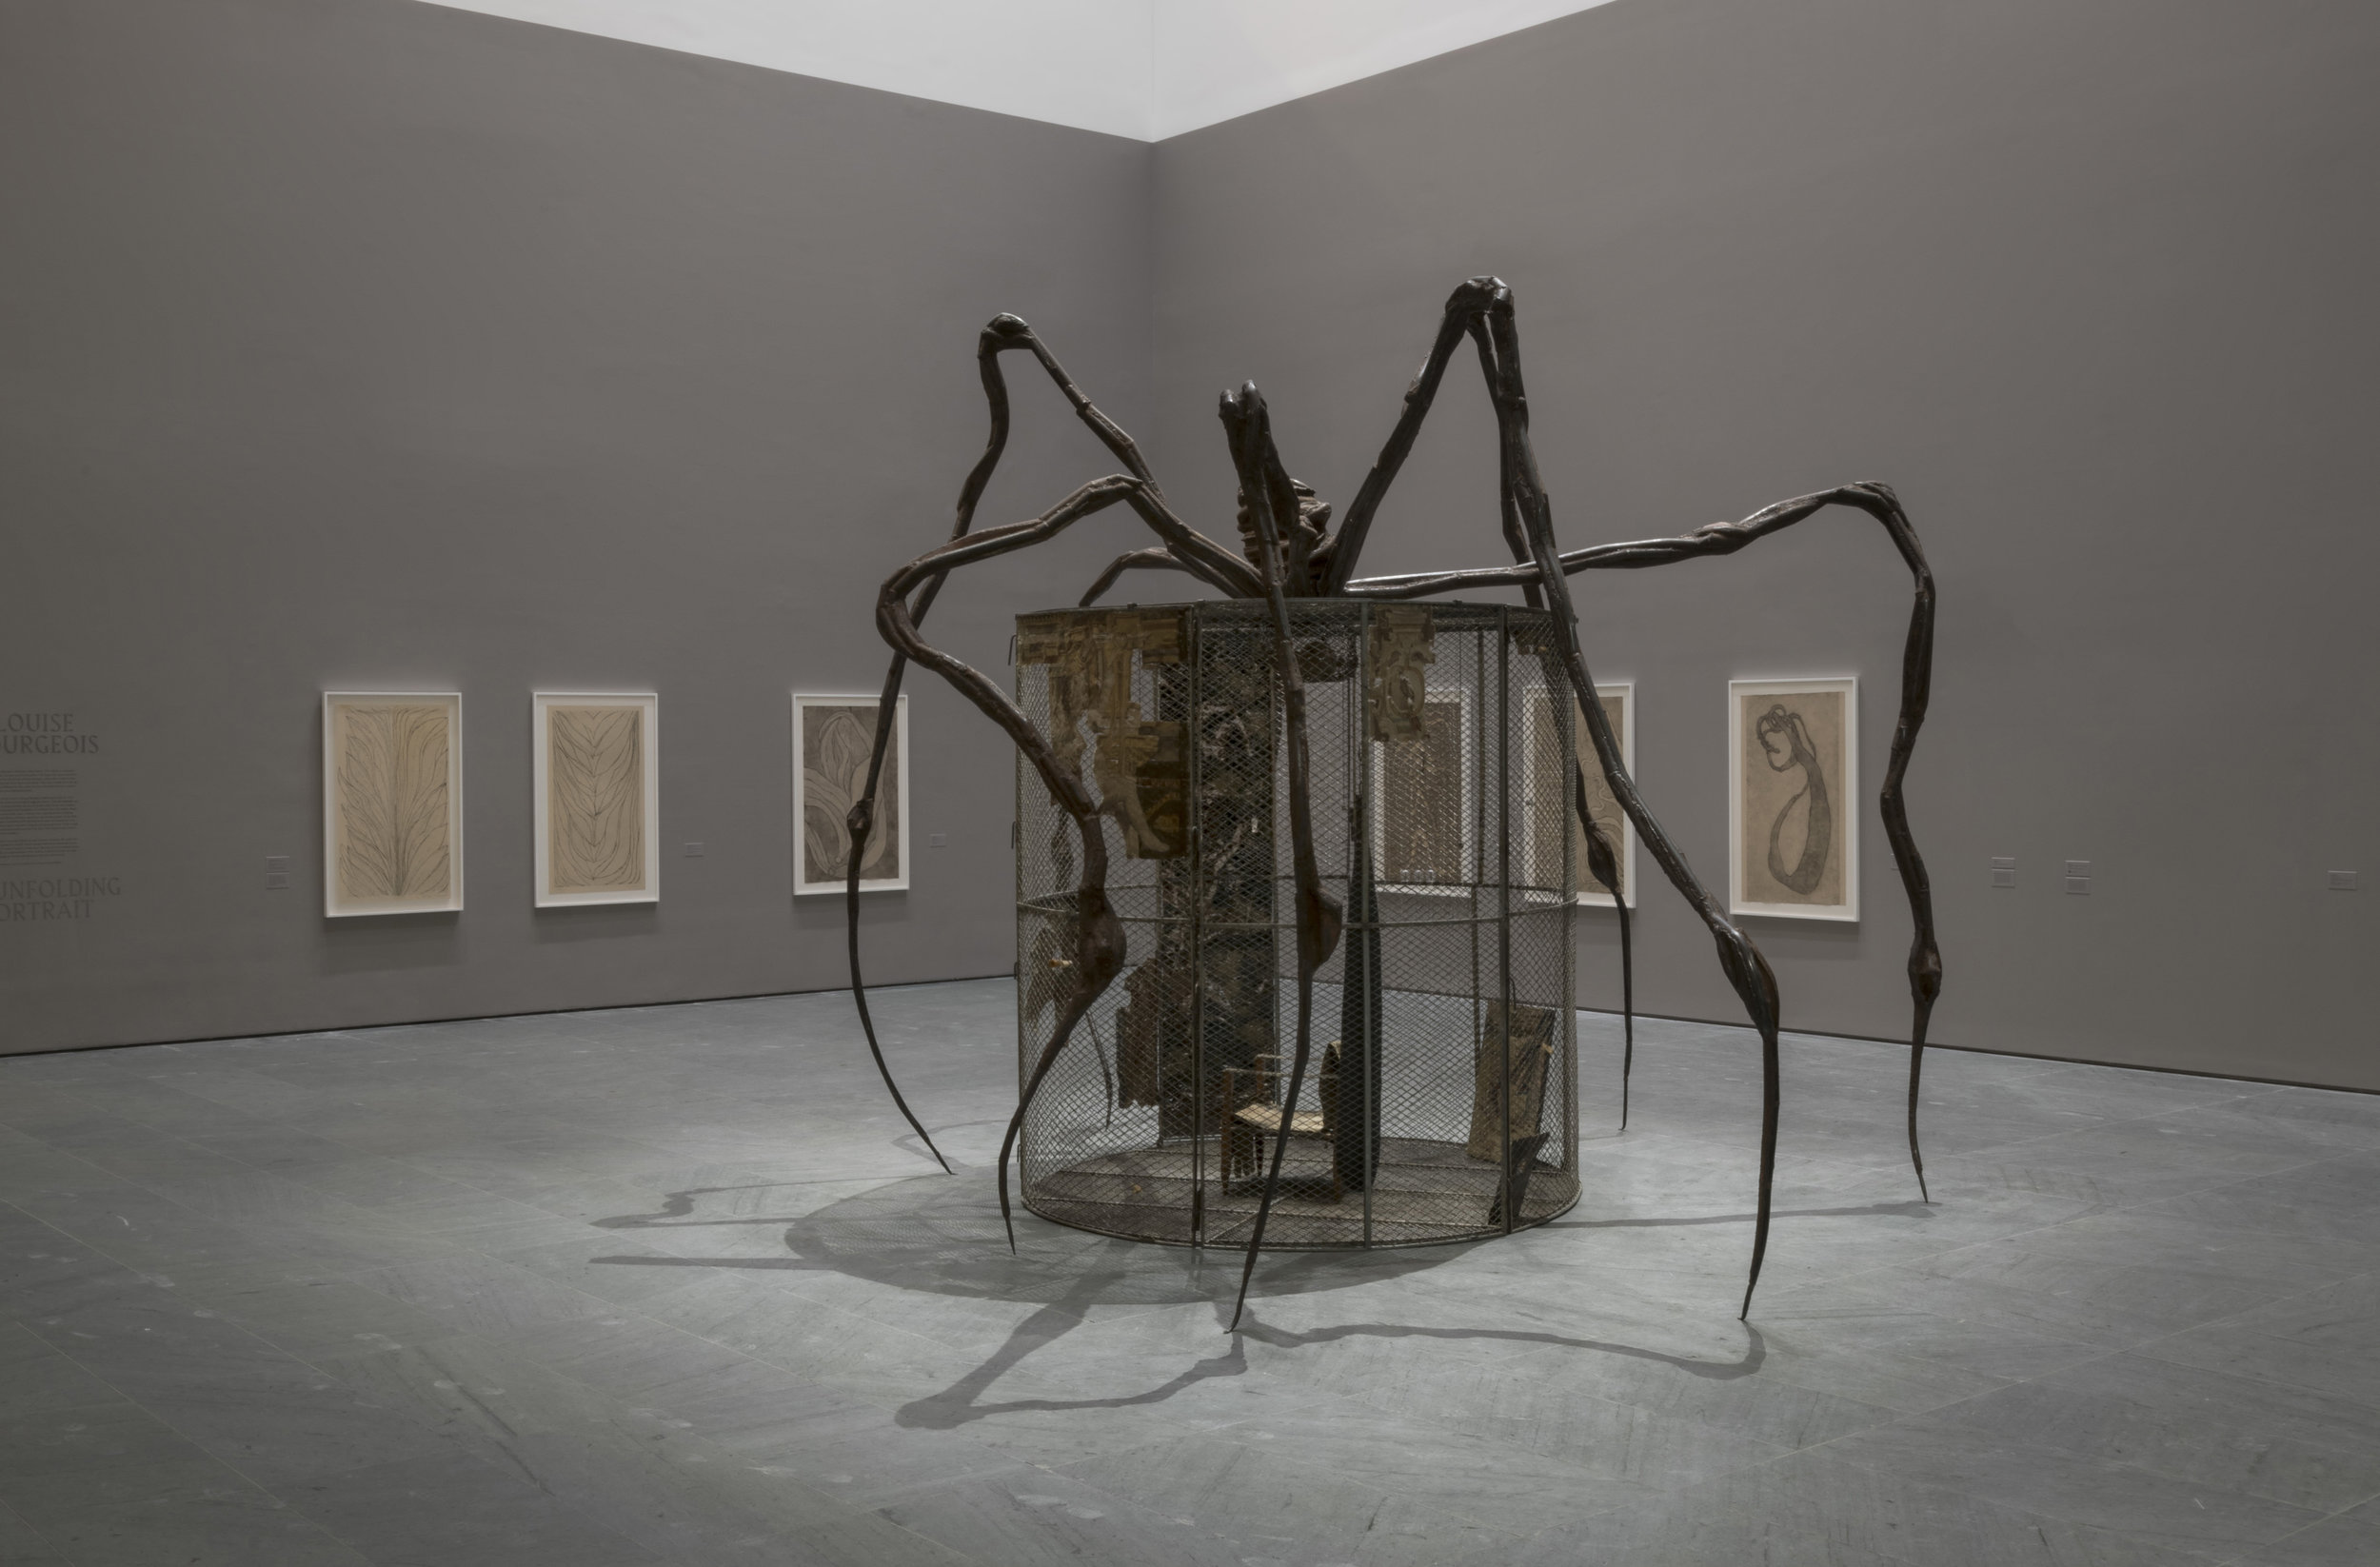 Installation view of Louise Bourgeois: An Unfolding Portrait. The Museum of Modern Art, New York, September 24, 2017–January 28, 2018. Photo by Martin Seck for the Museum of Modern Art © 2017 The Easton Foundation/Licensed by VAGA, NY.